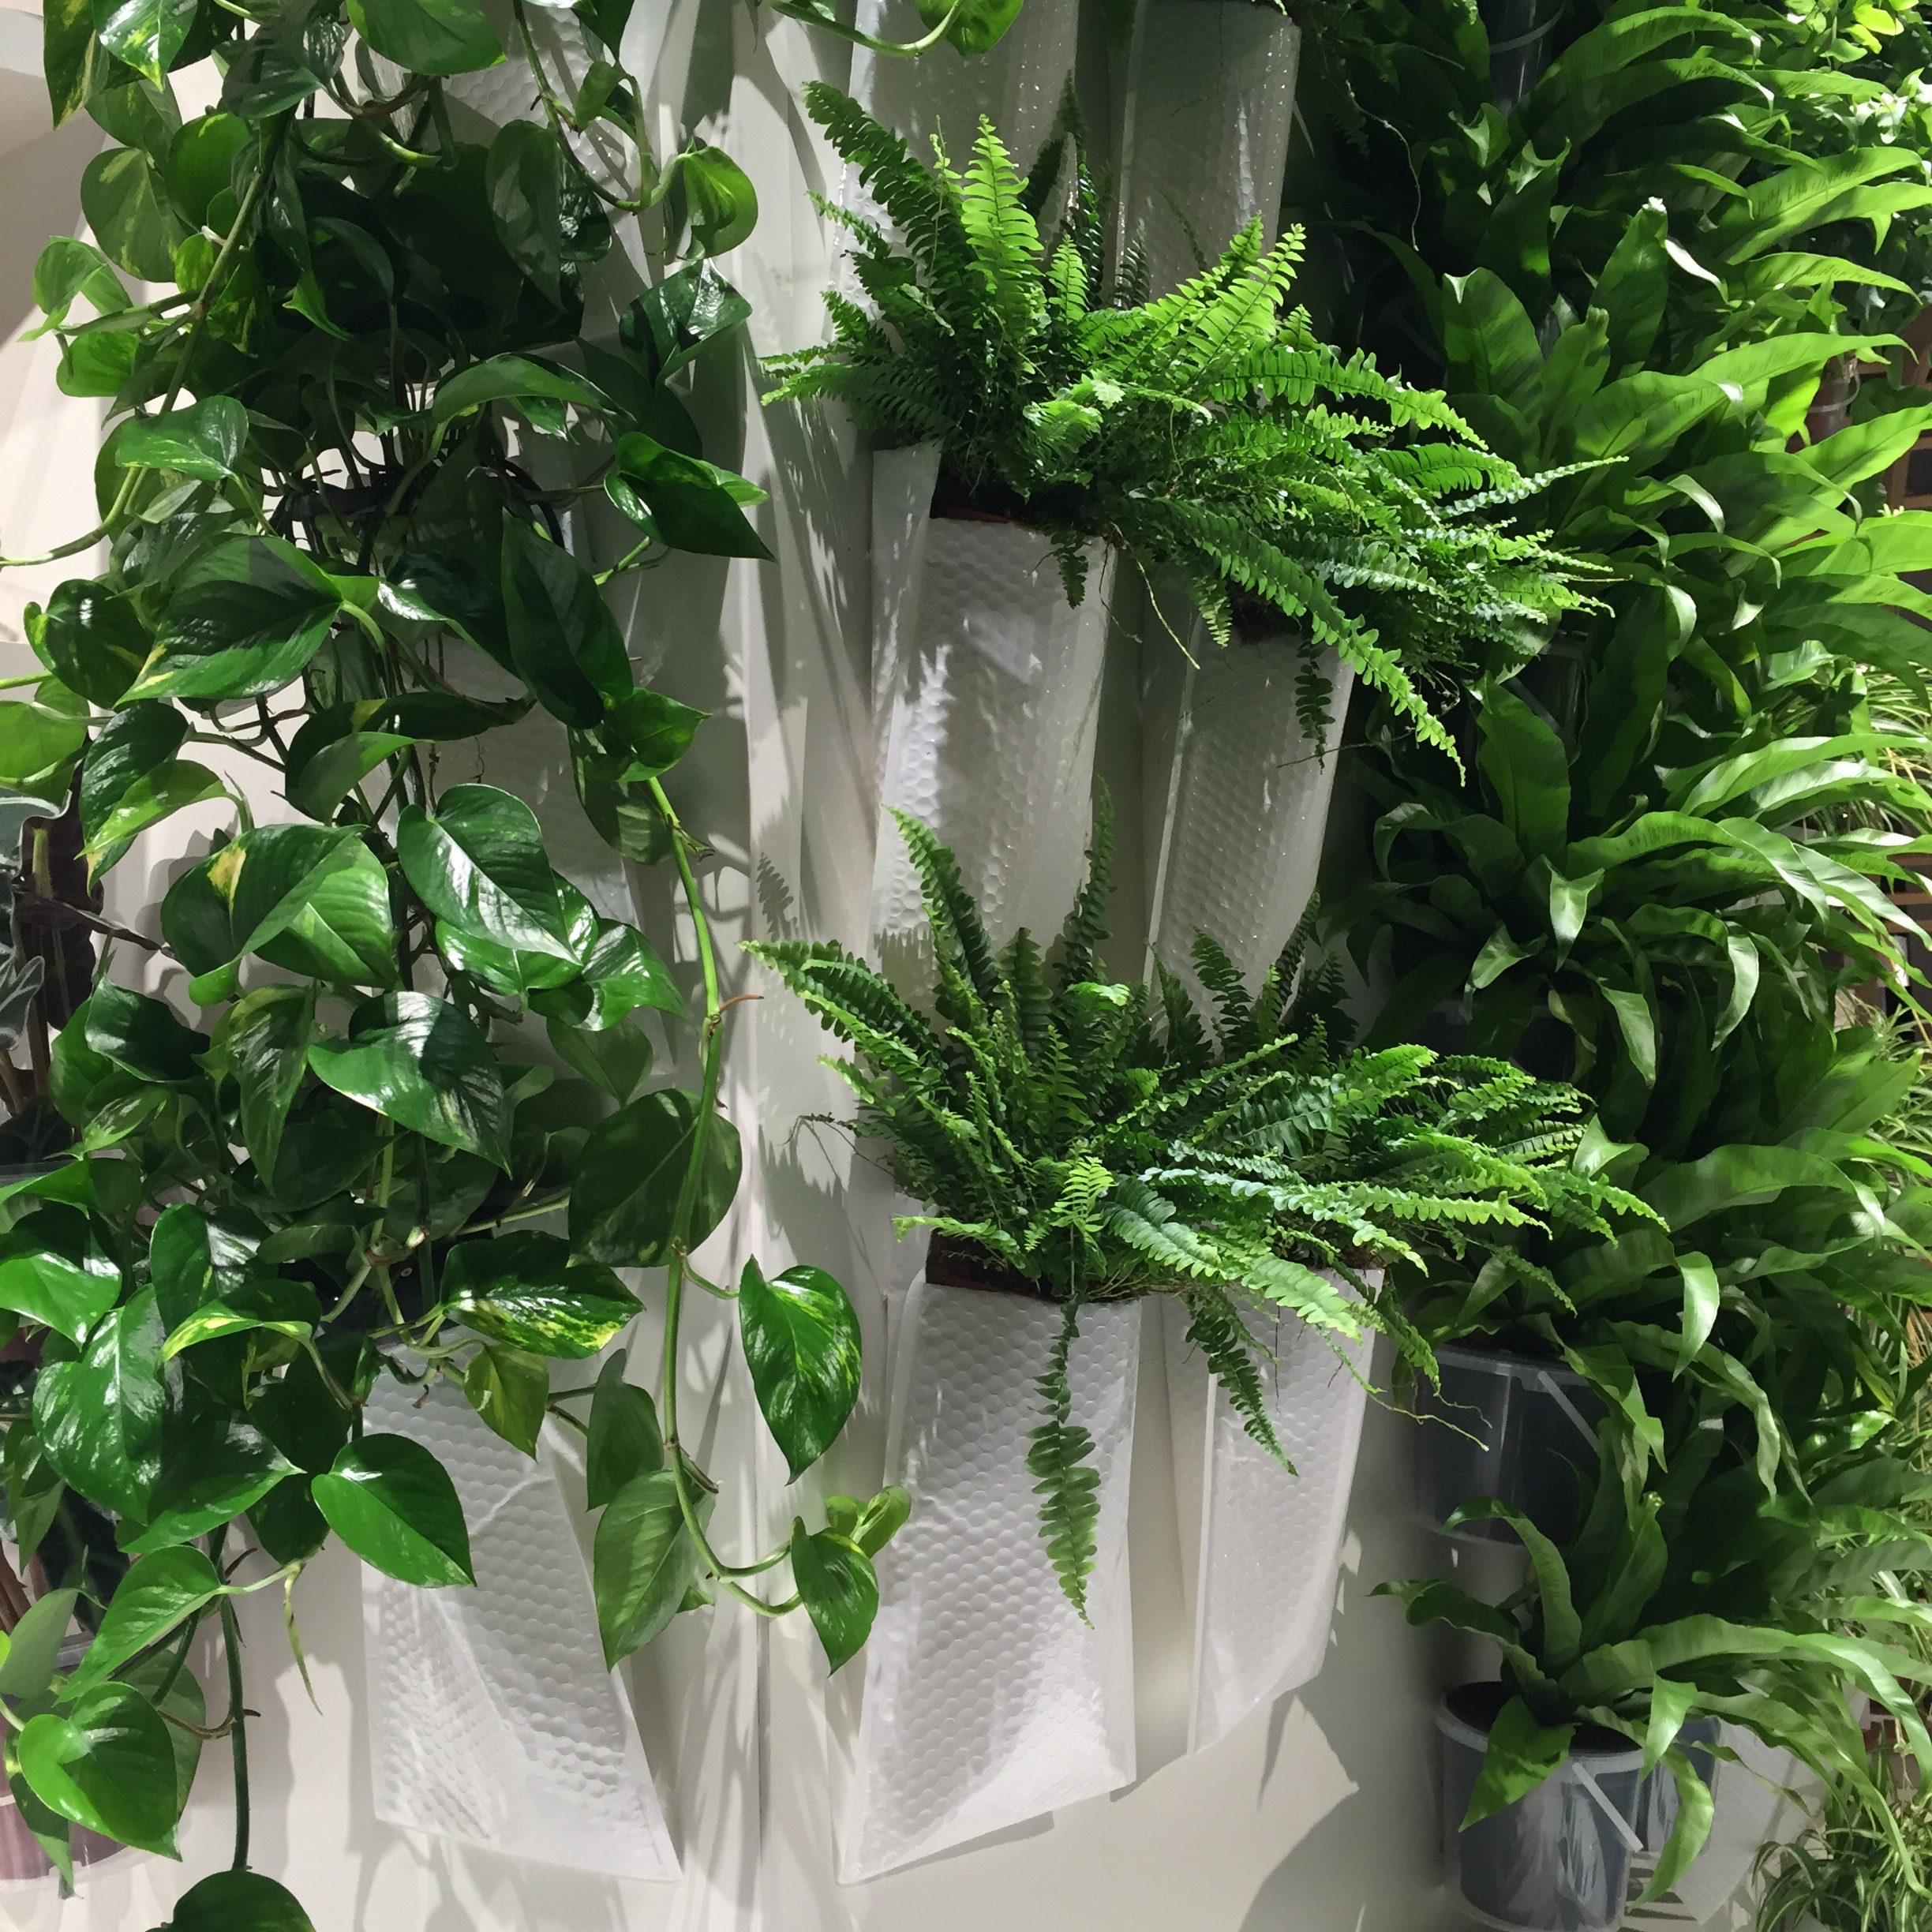 Many of the plants are hanging in white bubble shipping envelopes - clever!